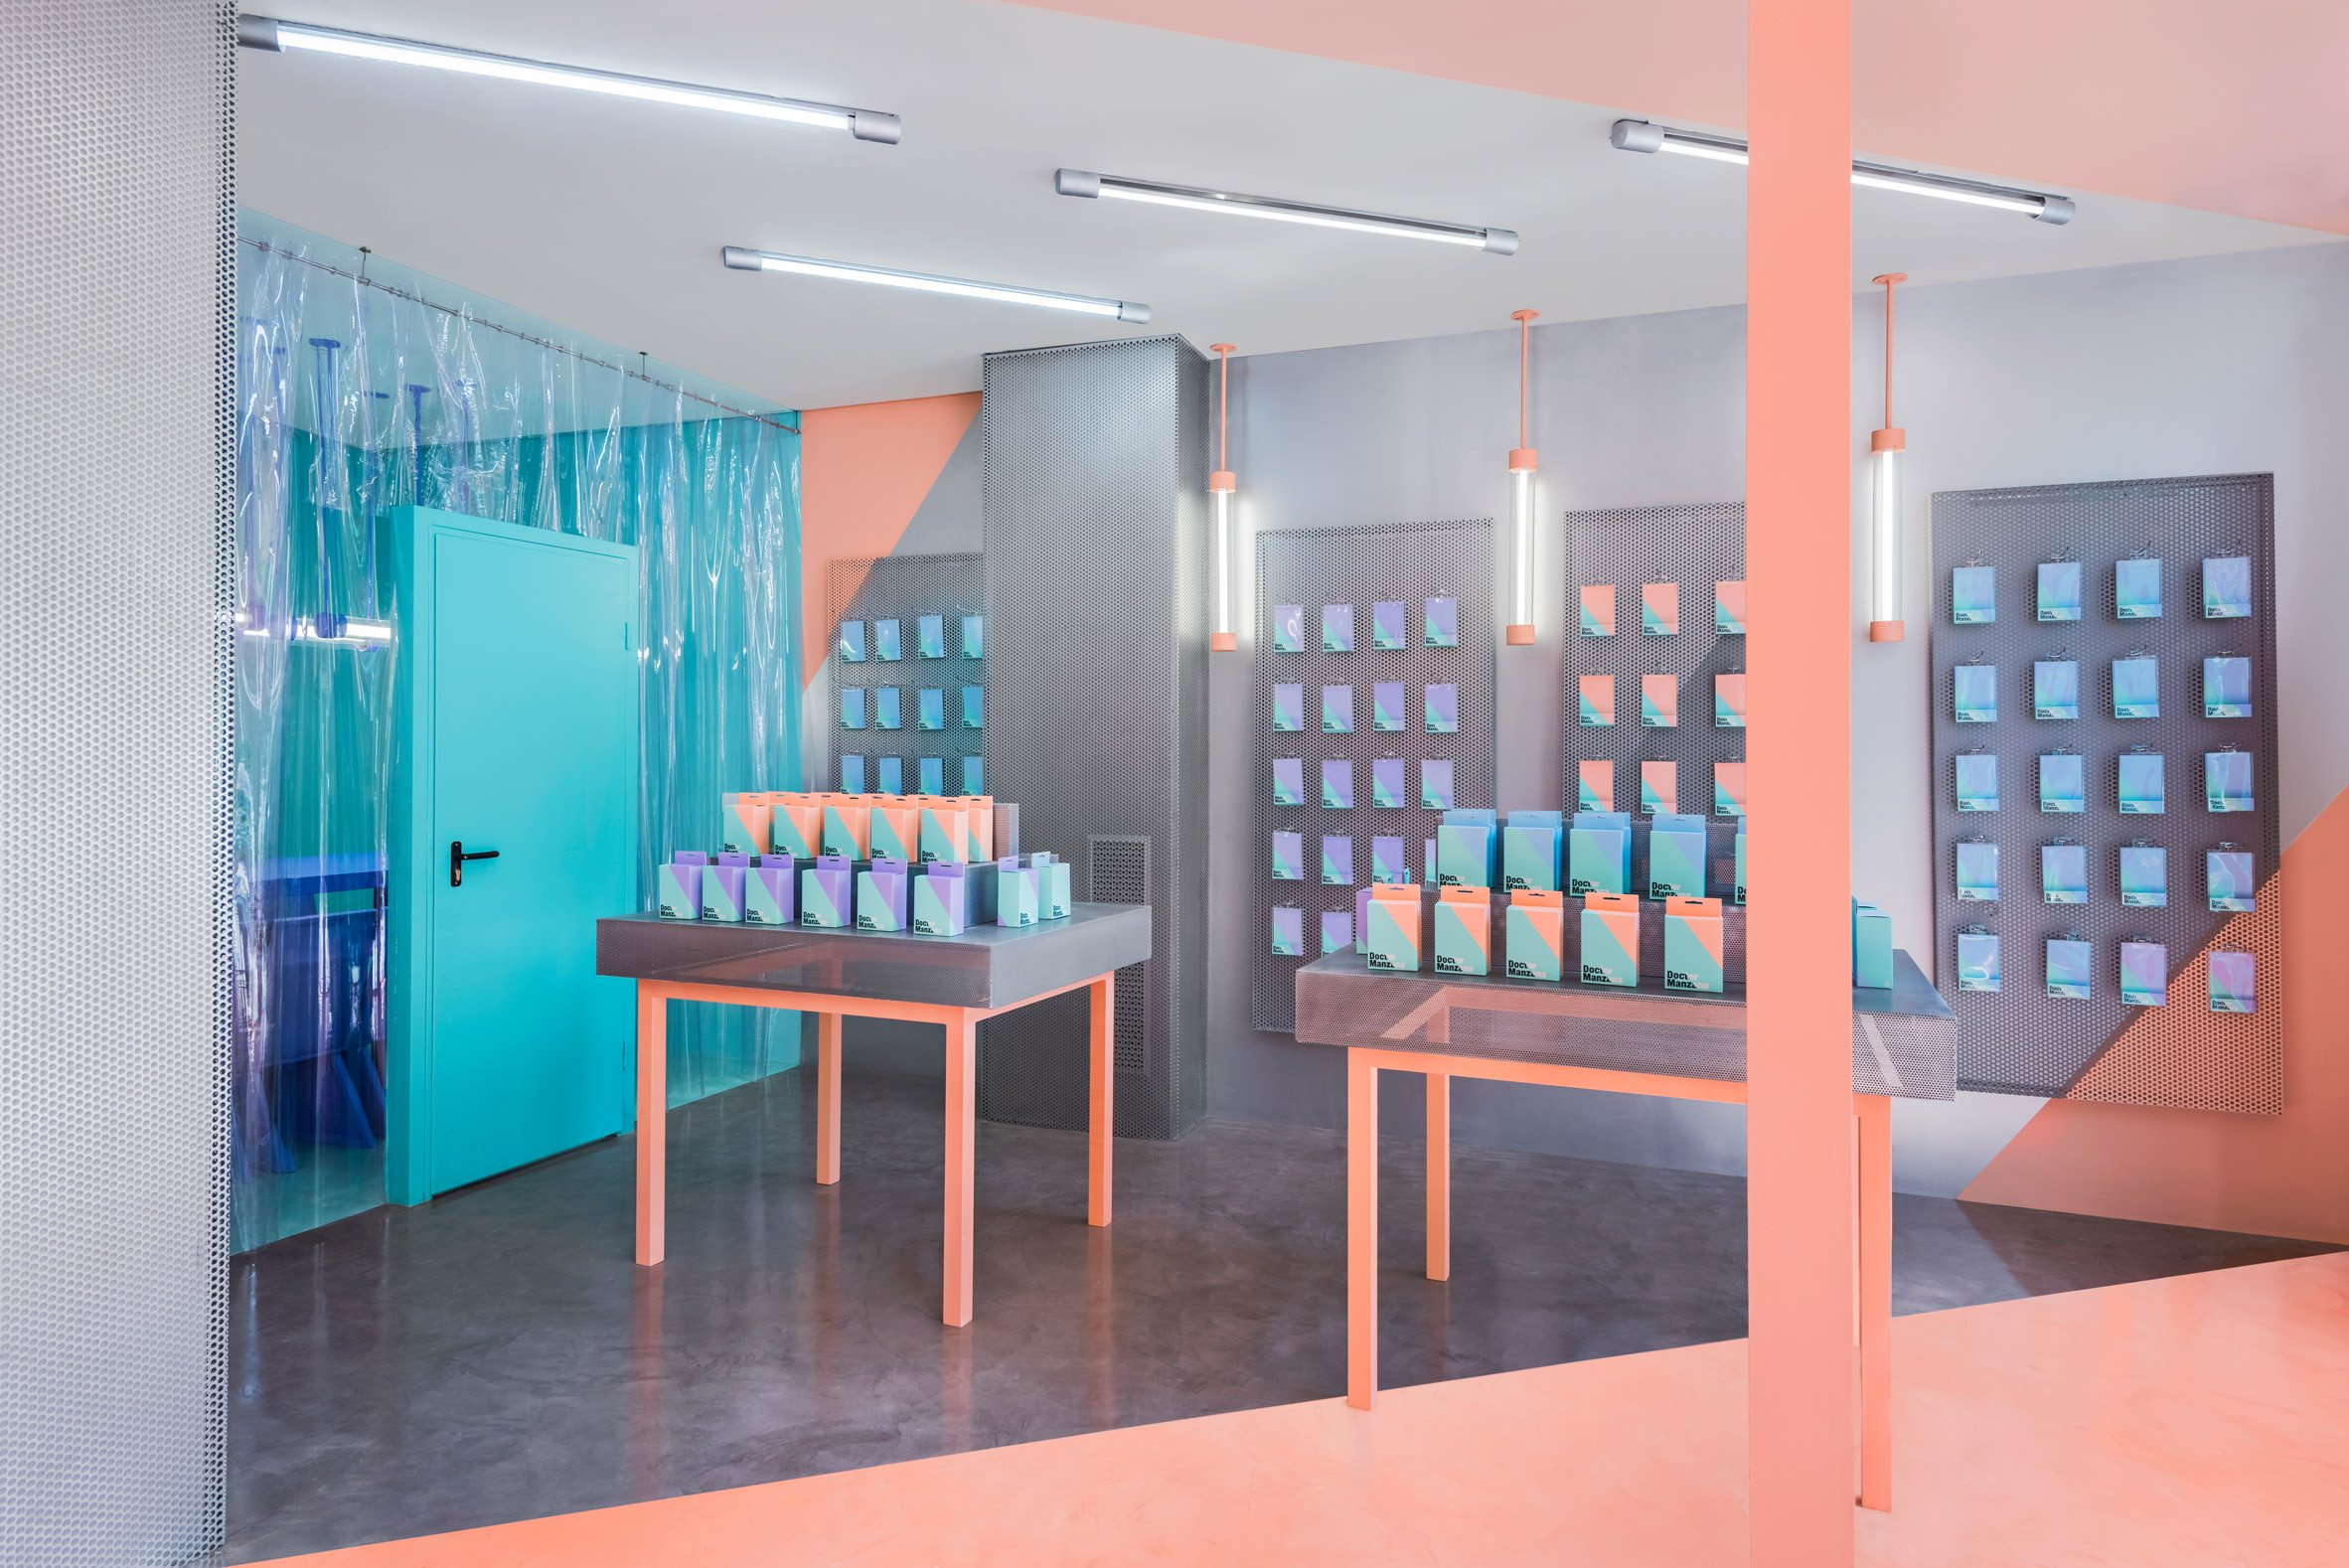 Masquespacio creates colour-clashing interior for phone repair shop in Valencia